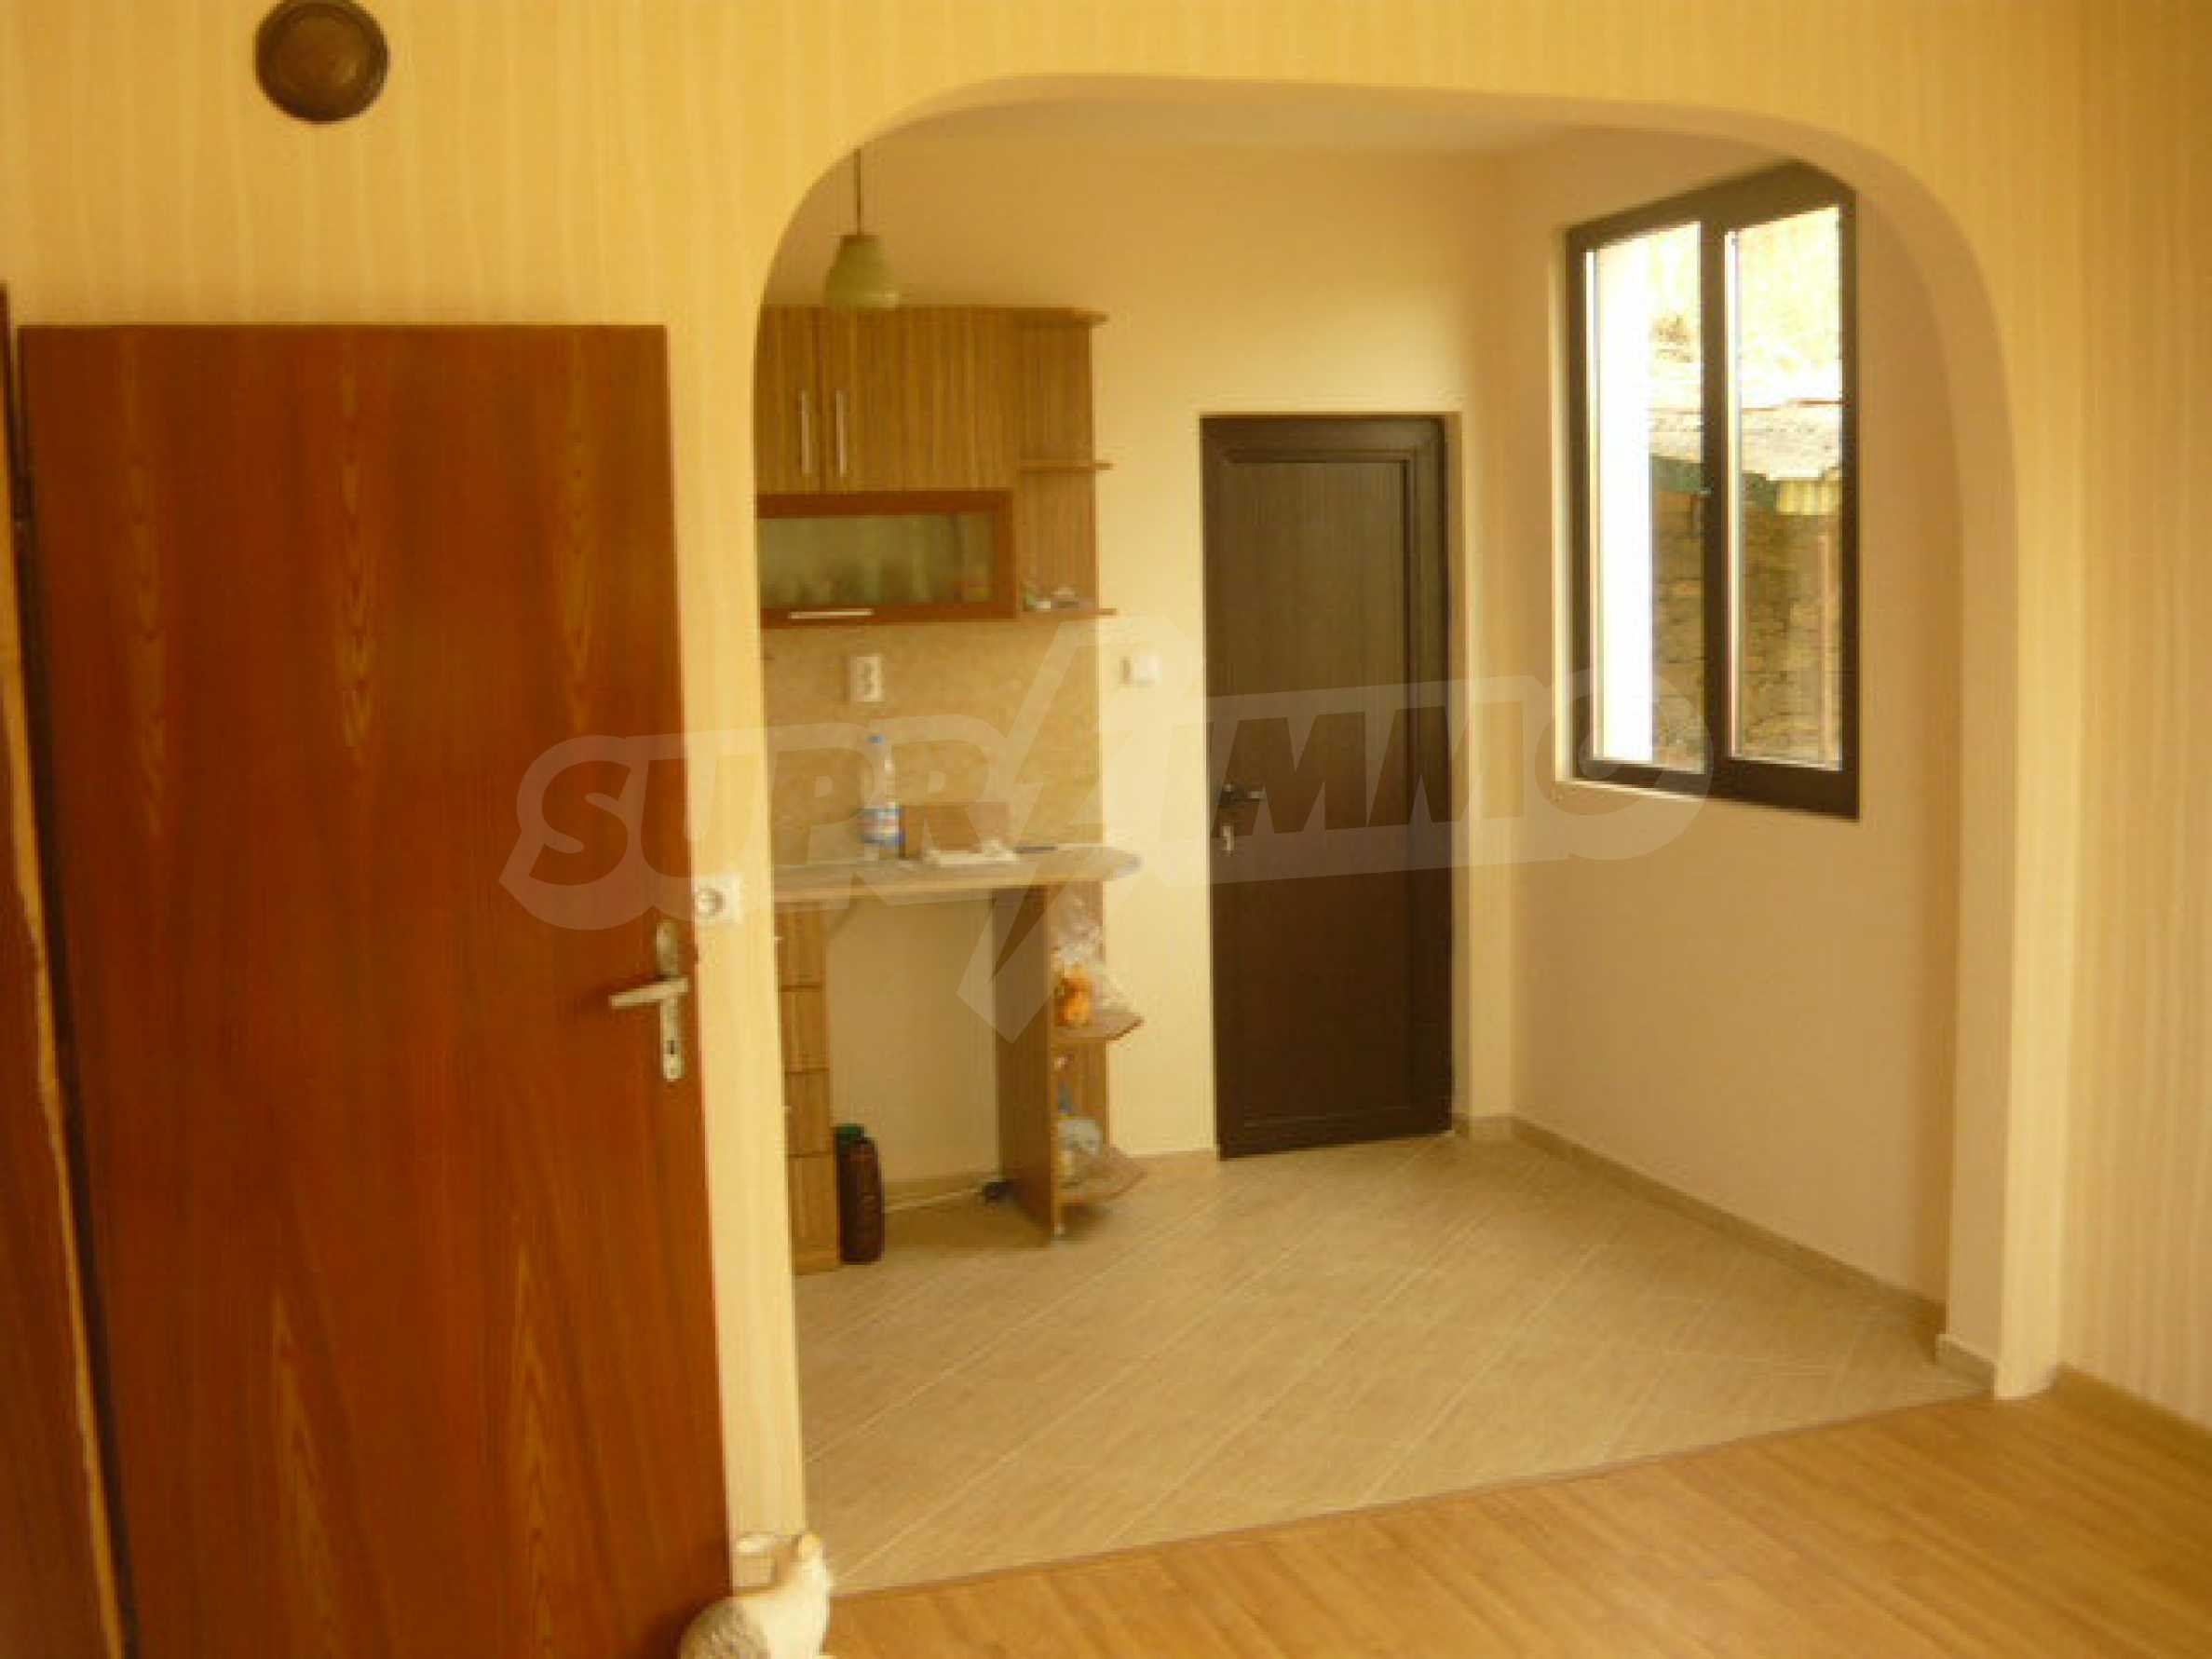 Two-storey house in a village located 3 km. from Veliko Tarnovo 3